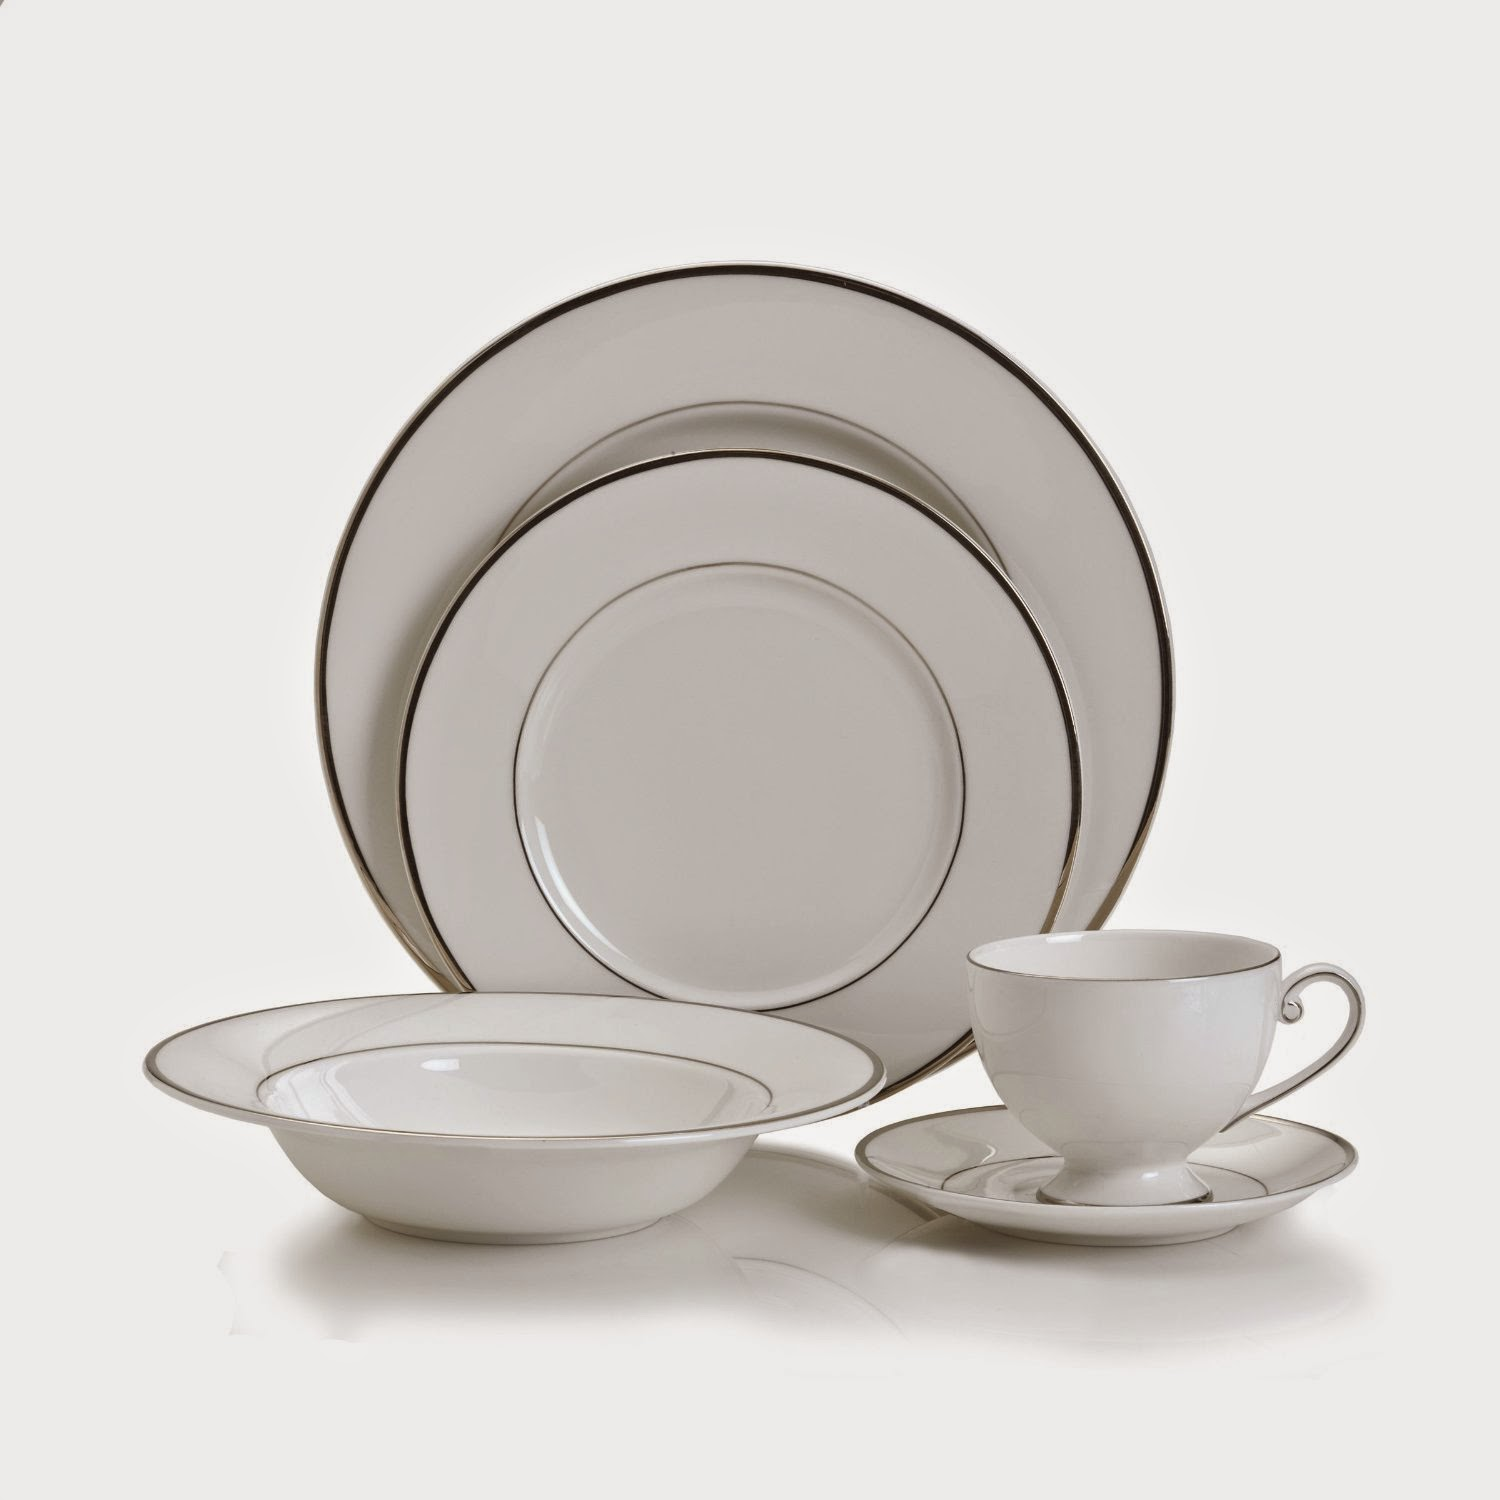 Mikasa Cameo Platinum 40-Piece Dinnerware Set Service for 8 White  sc 1 st  The Dinnerware Shop & Mikasa Cameo Platinum 40-Piece Dinnerware Set Service for 8 White ...